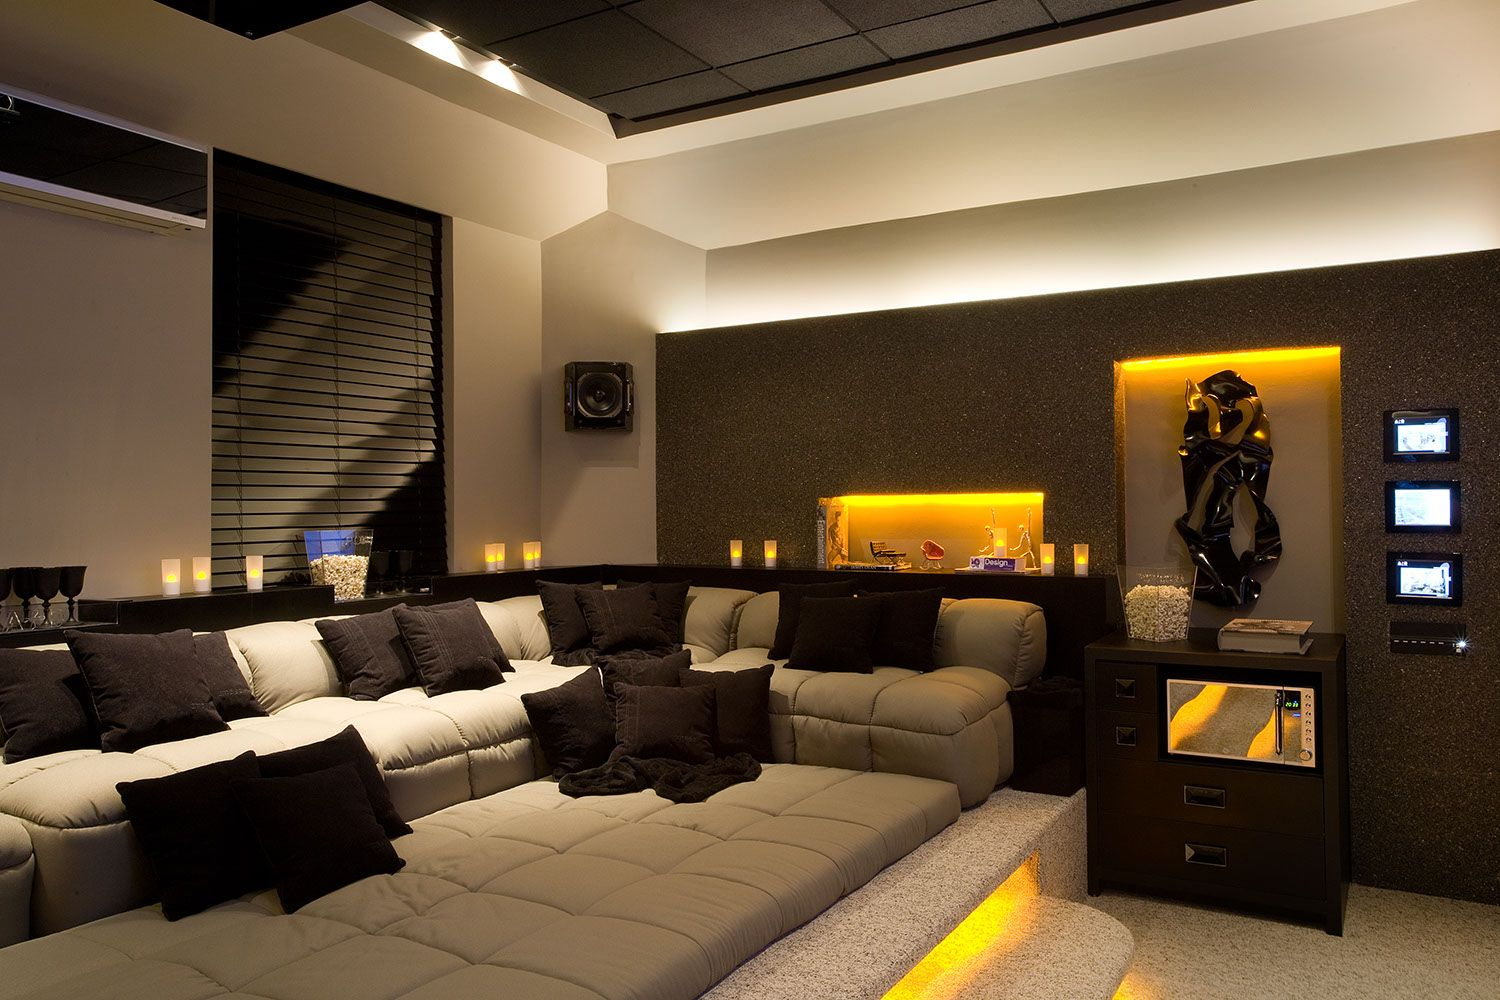 wonderful home theater decor picture 731 - Home Cinema Decor